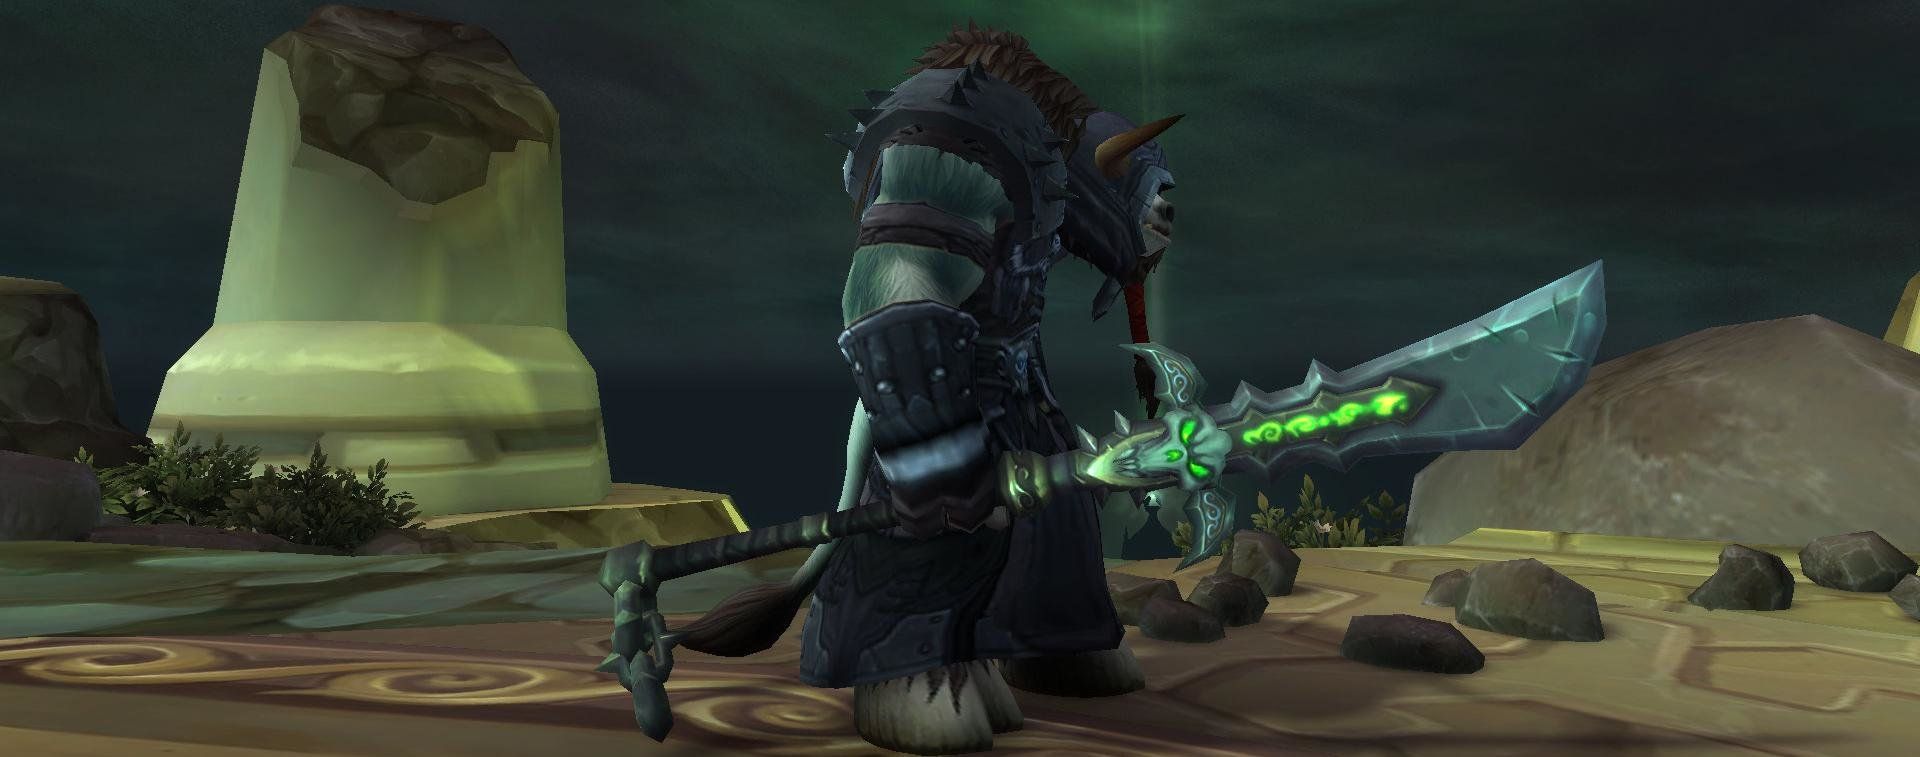 death knight and paladins got class weapon arsenals in build 23708 of patch 7 2 with arsenals you can learn all weapons your class can equip including